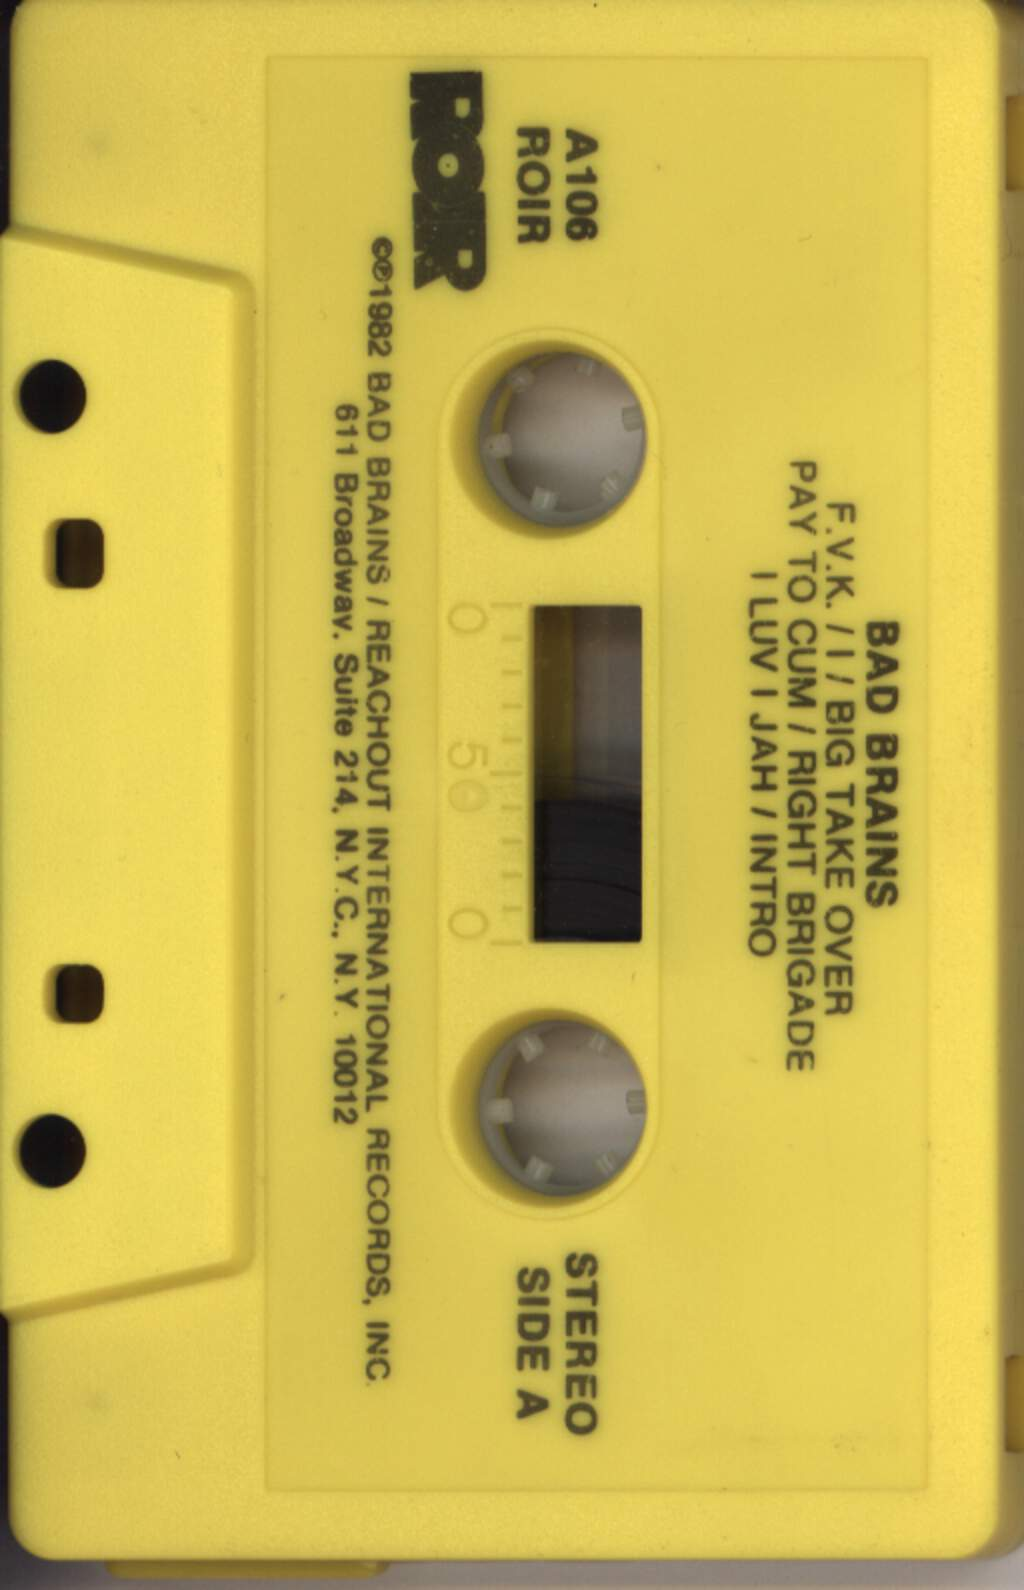 Bad Brains: Bad Brains, Compact Cassette